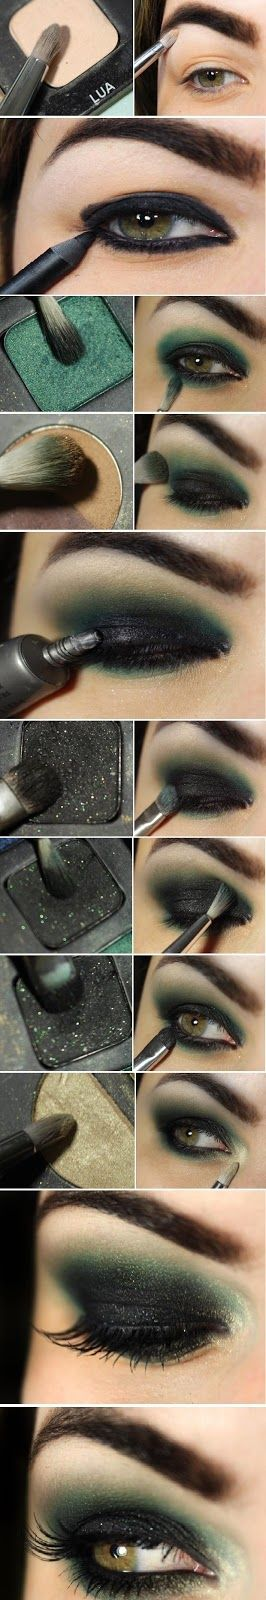 tutorial maquillaje ojos mejores equipos - Page 9 of 14 - fashion-style.es